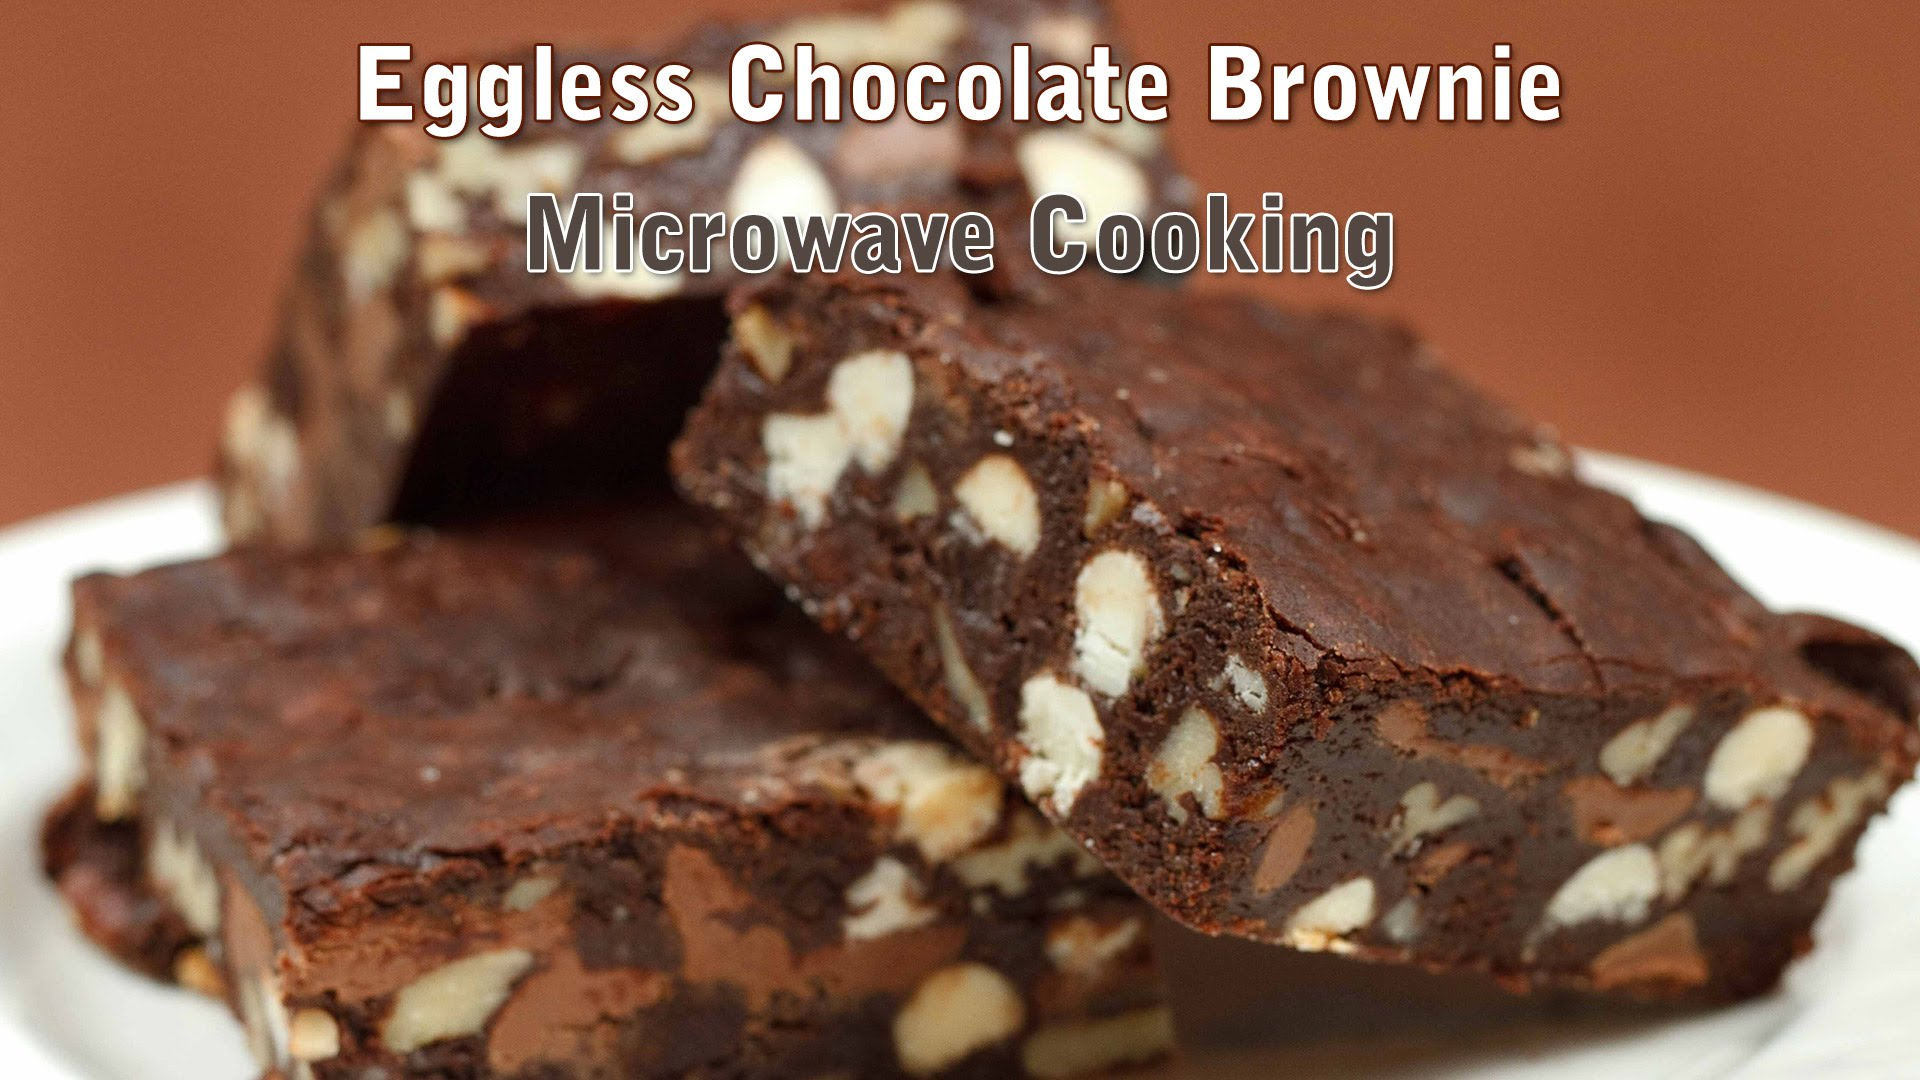 Chocolate Brownie Recipe | Eggless Chocolate Walnut ...